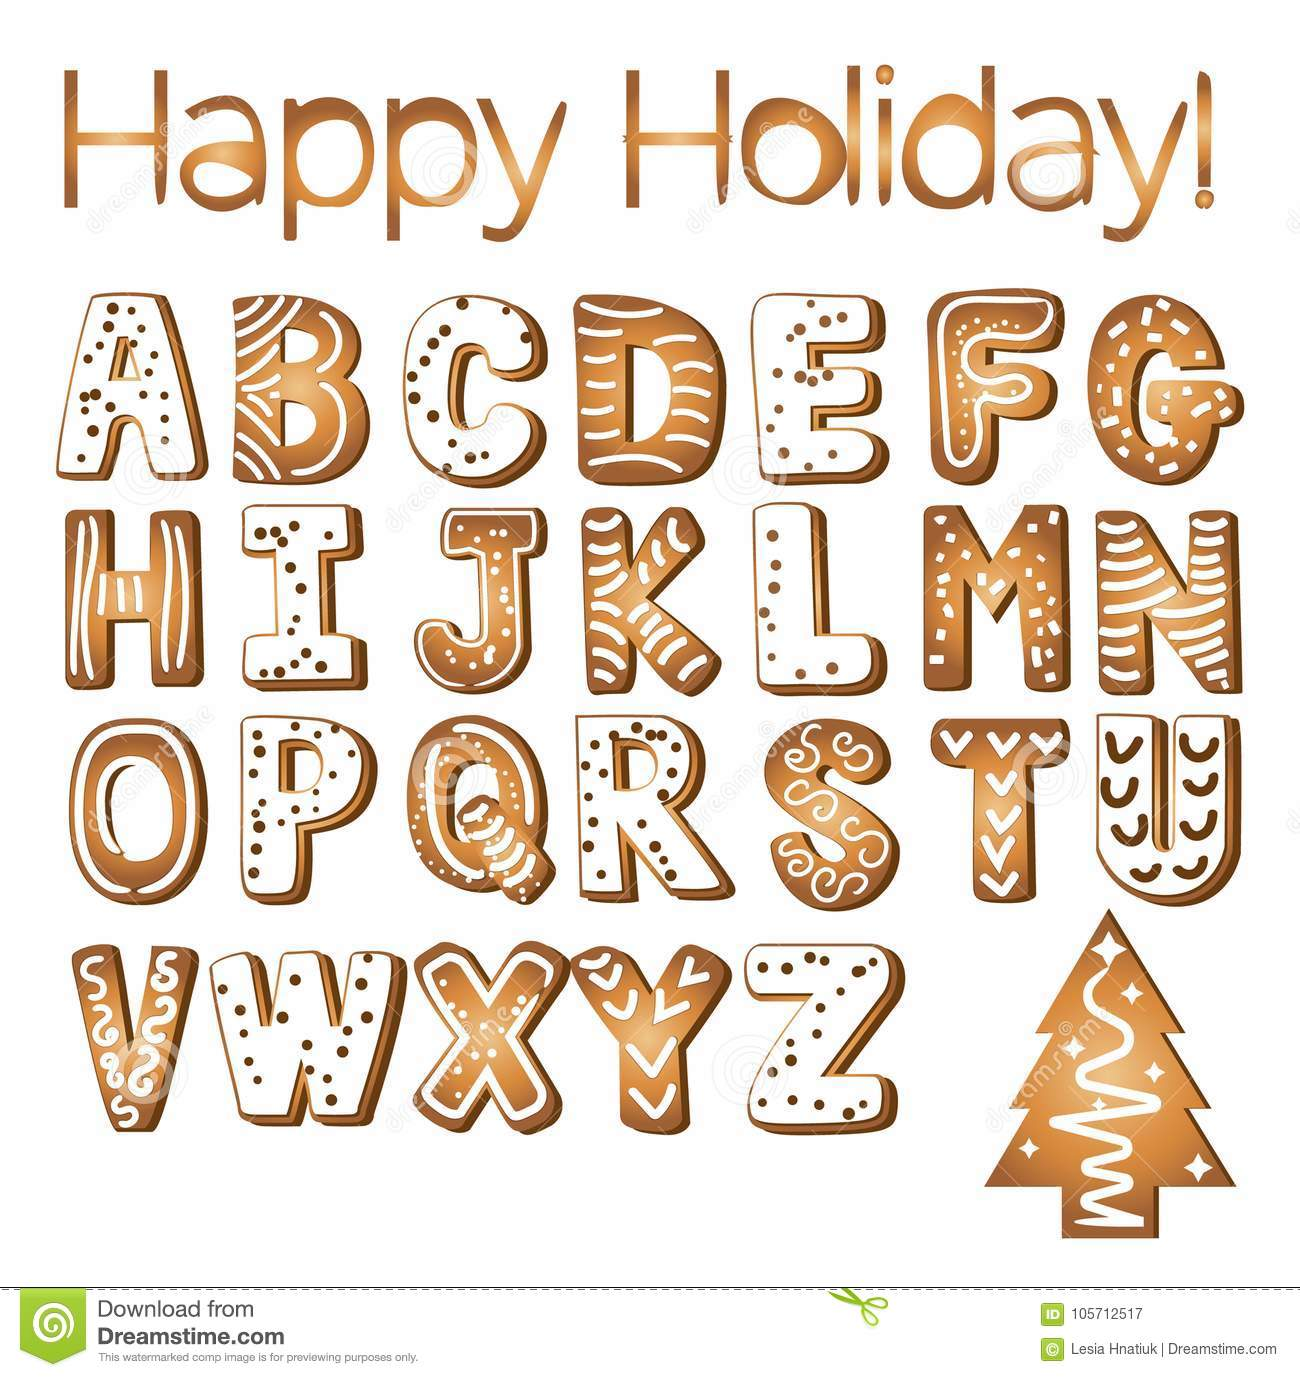 Gingerbread cookies alphabet holidays ginger cookie isolated font text food biscuit xmas letter vector illustration